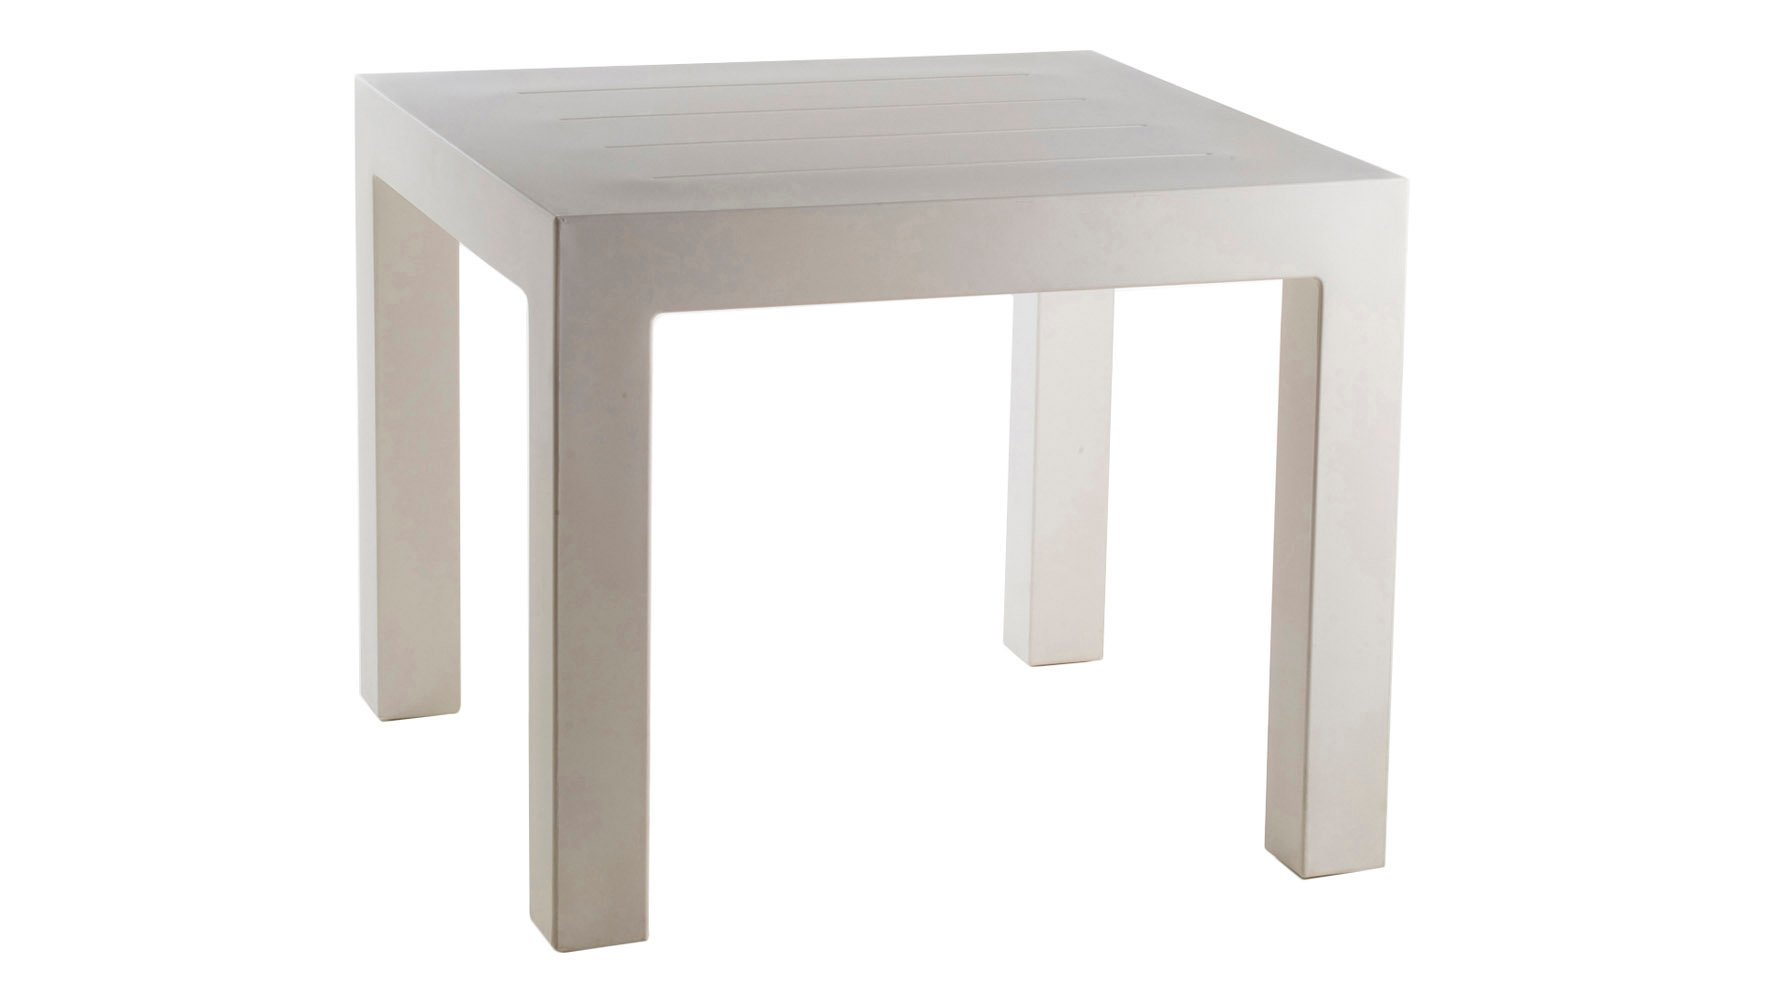 36 Inch Accent Table - jut-lacquered-table-35-5-white-44410_bla_Cool 36 Inch Accent Table - jut-lacquered-table-35-5-white-44410_bla  Photograph_43911.jpg